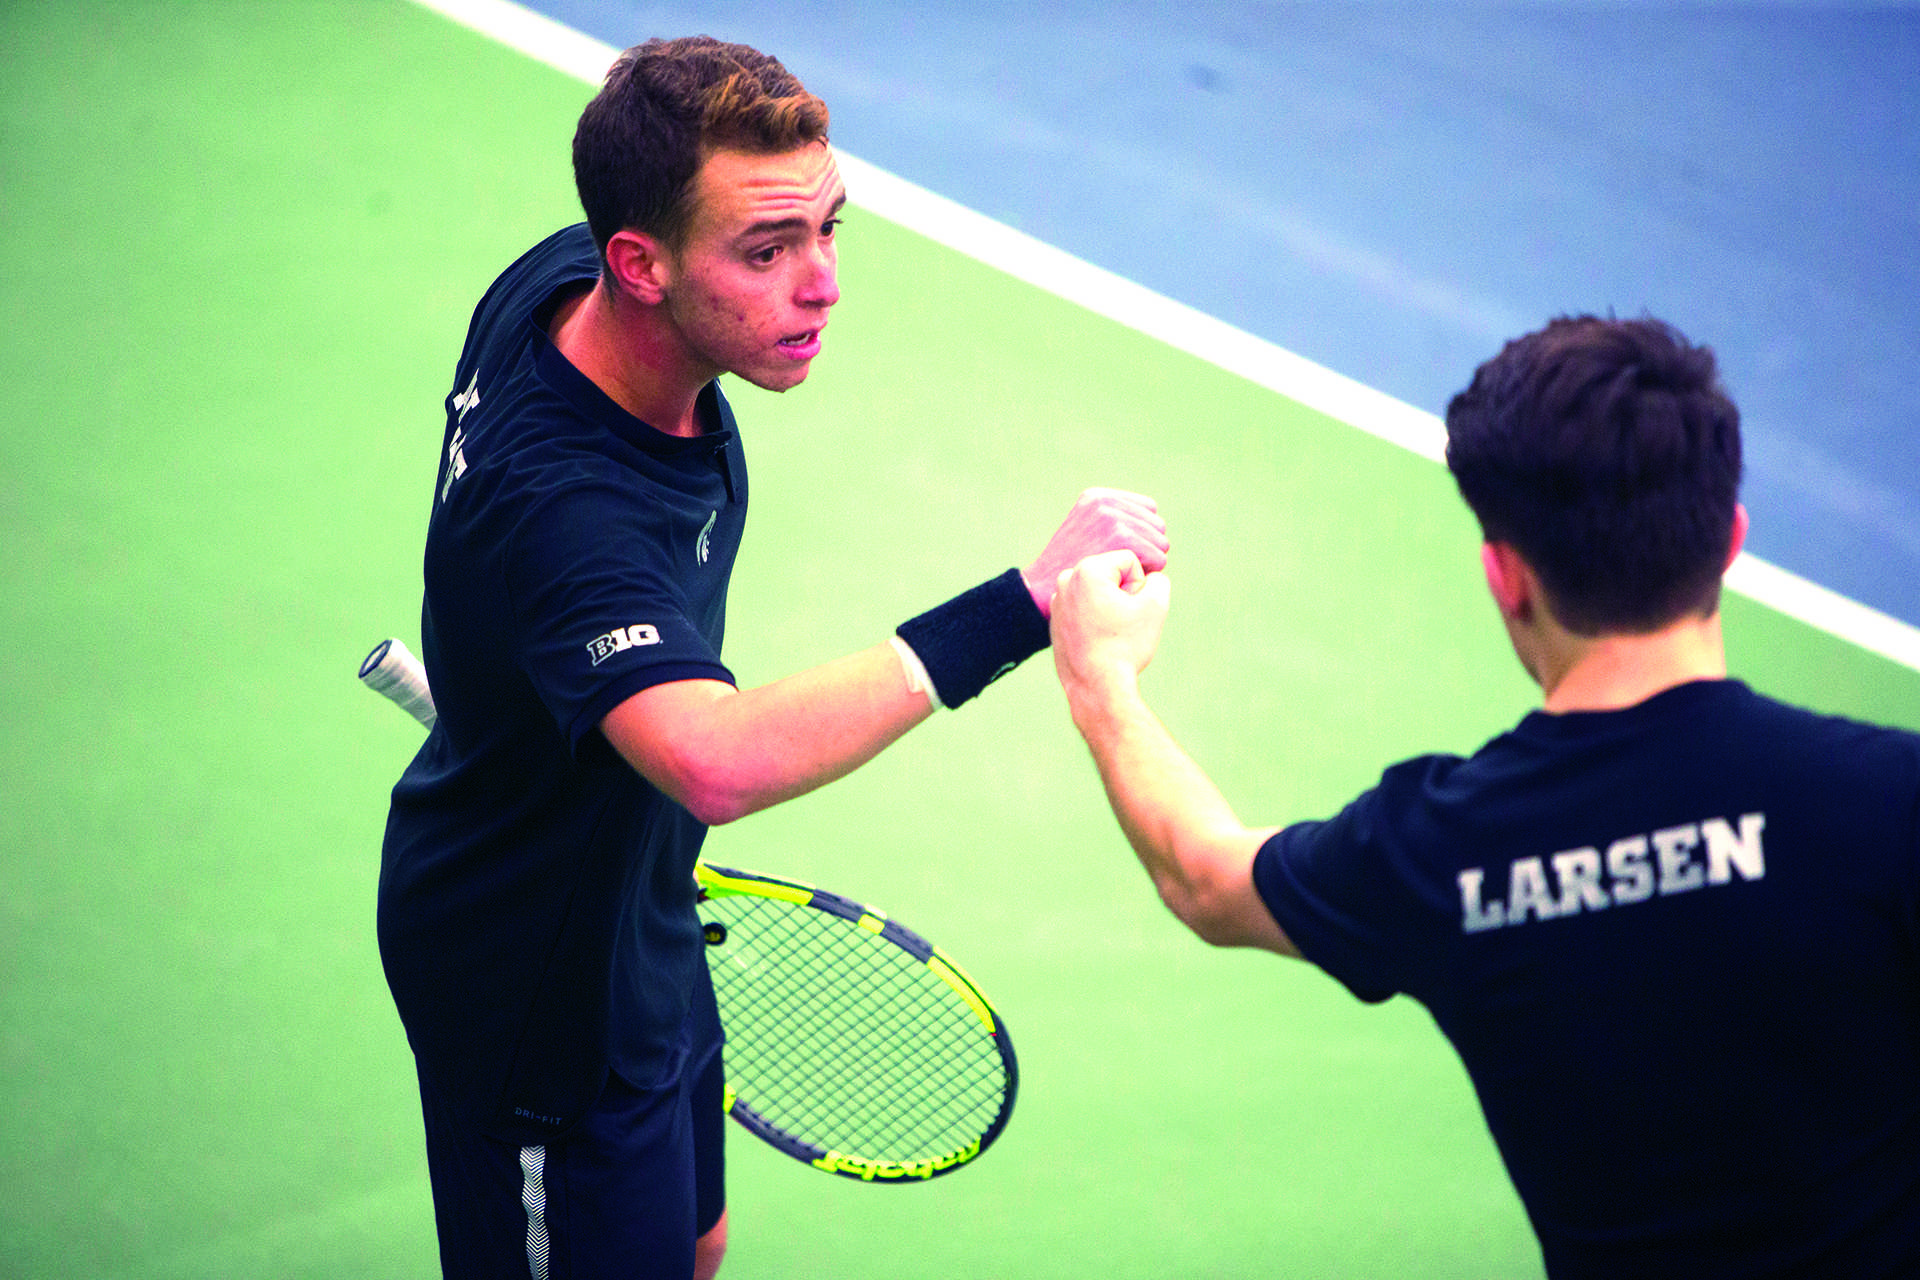 Iowa's Jonas Larsen and Kareem Allaf bump fists during a tennis match between Iowa and Western Michigan in Iowa City on Friday, Jan. 19, 2018. The Hawkeyes earned the doubles point but lost the match overall, 5-2. (Shivansh Ahuja/The Daily Iowan)